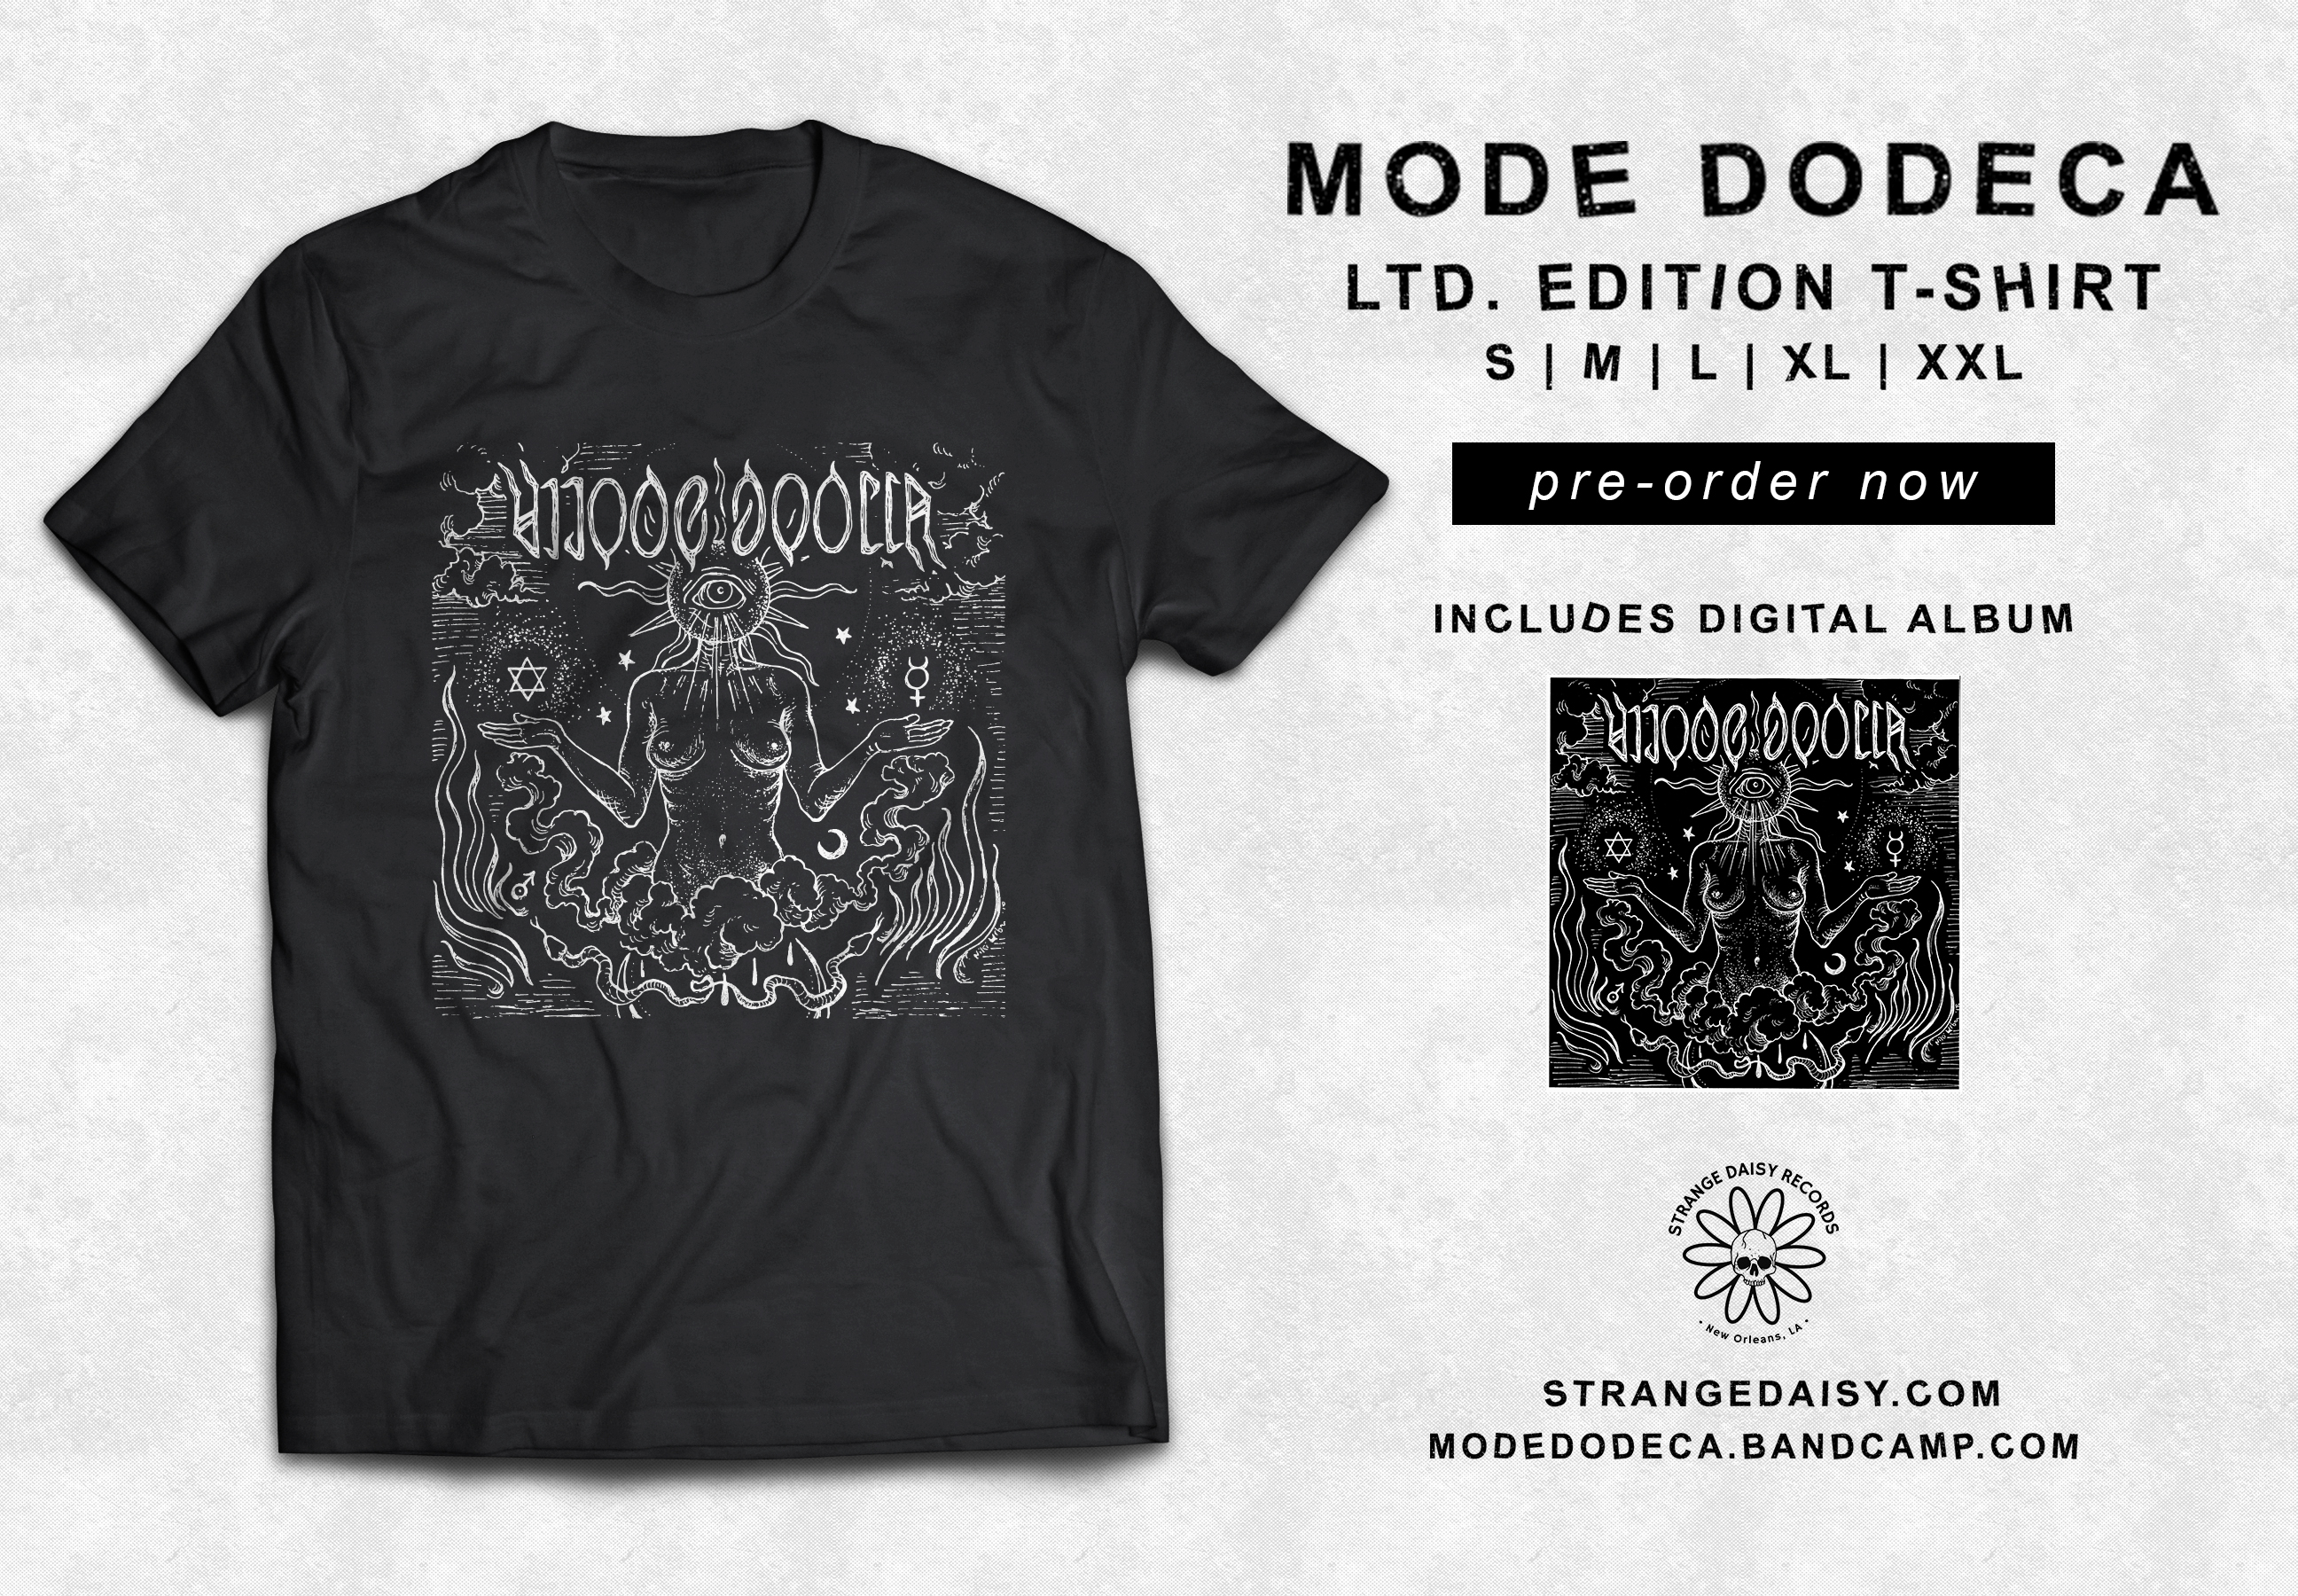 Mode Dodeca T-Shirt